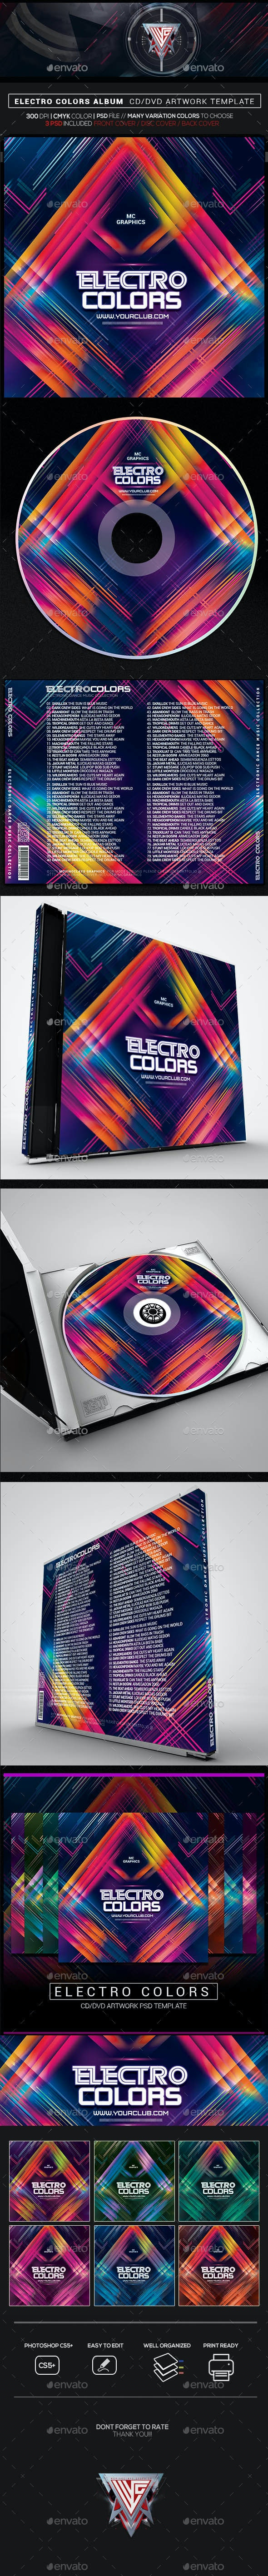 Electro Colors Photoshop CD/DVD Template - CD & DVD Artwork Print Templates